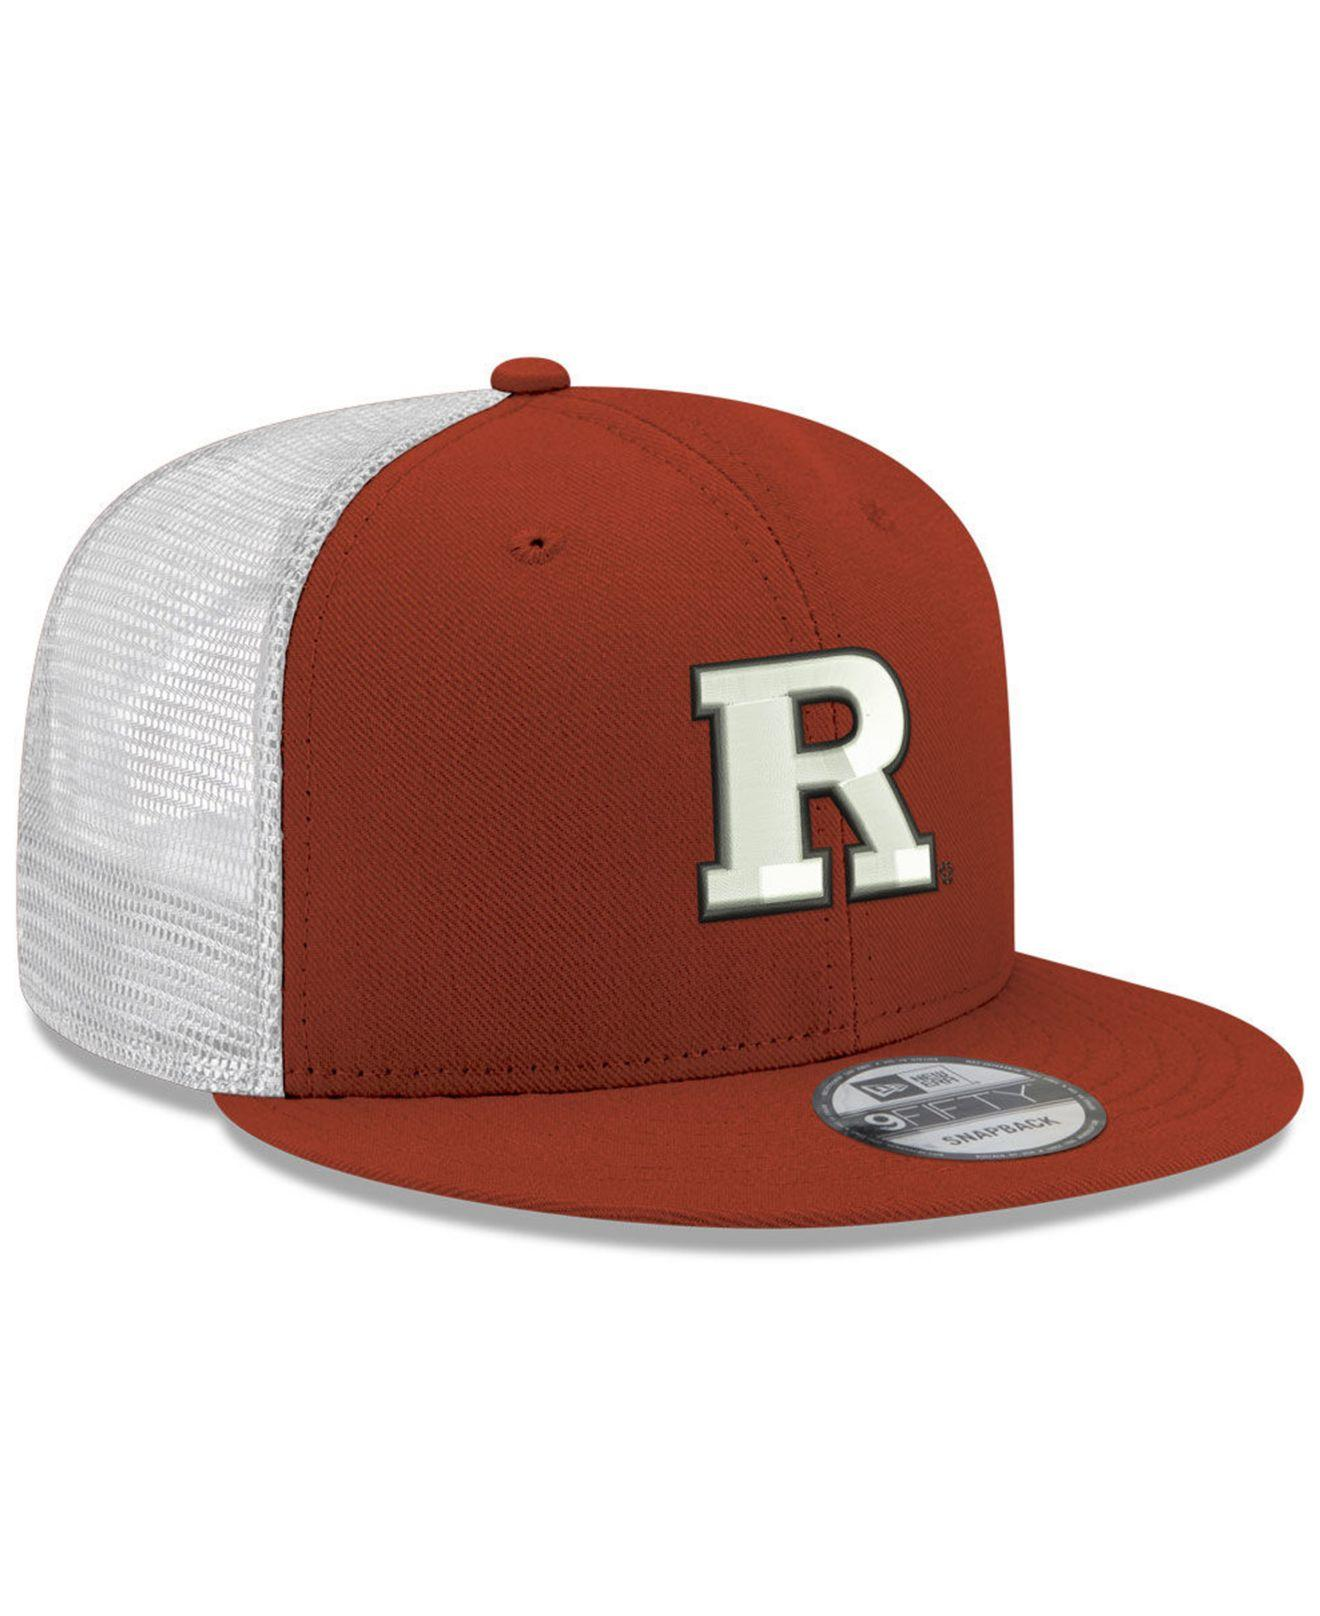 new products c55fa fad7a Lyst - KTZ Rutgers Scarlet Knights Tc Meshback Snapback Cap in Red for Men